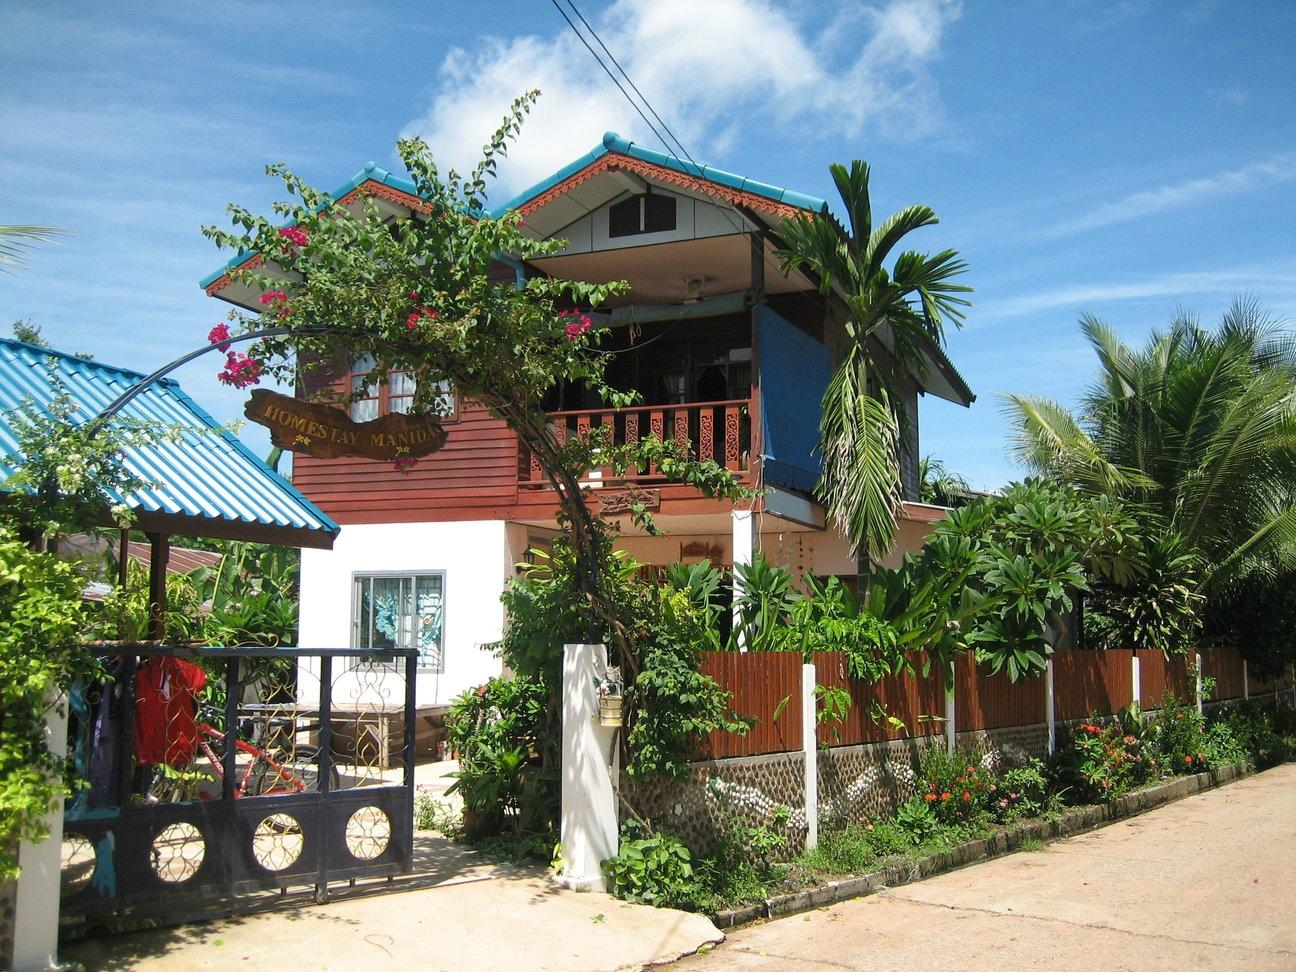 Homestay and Guesthouse Manida